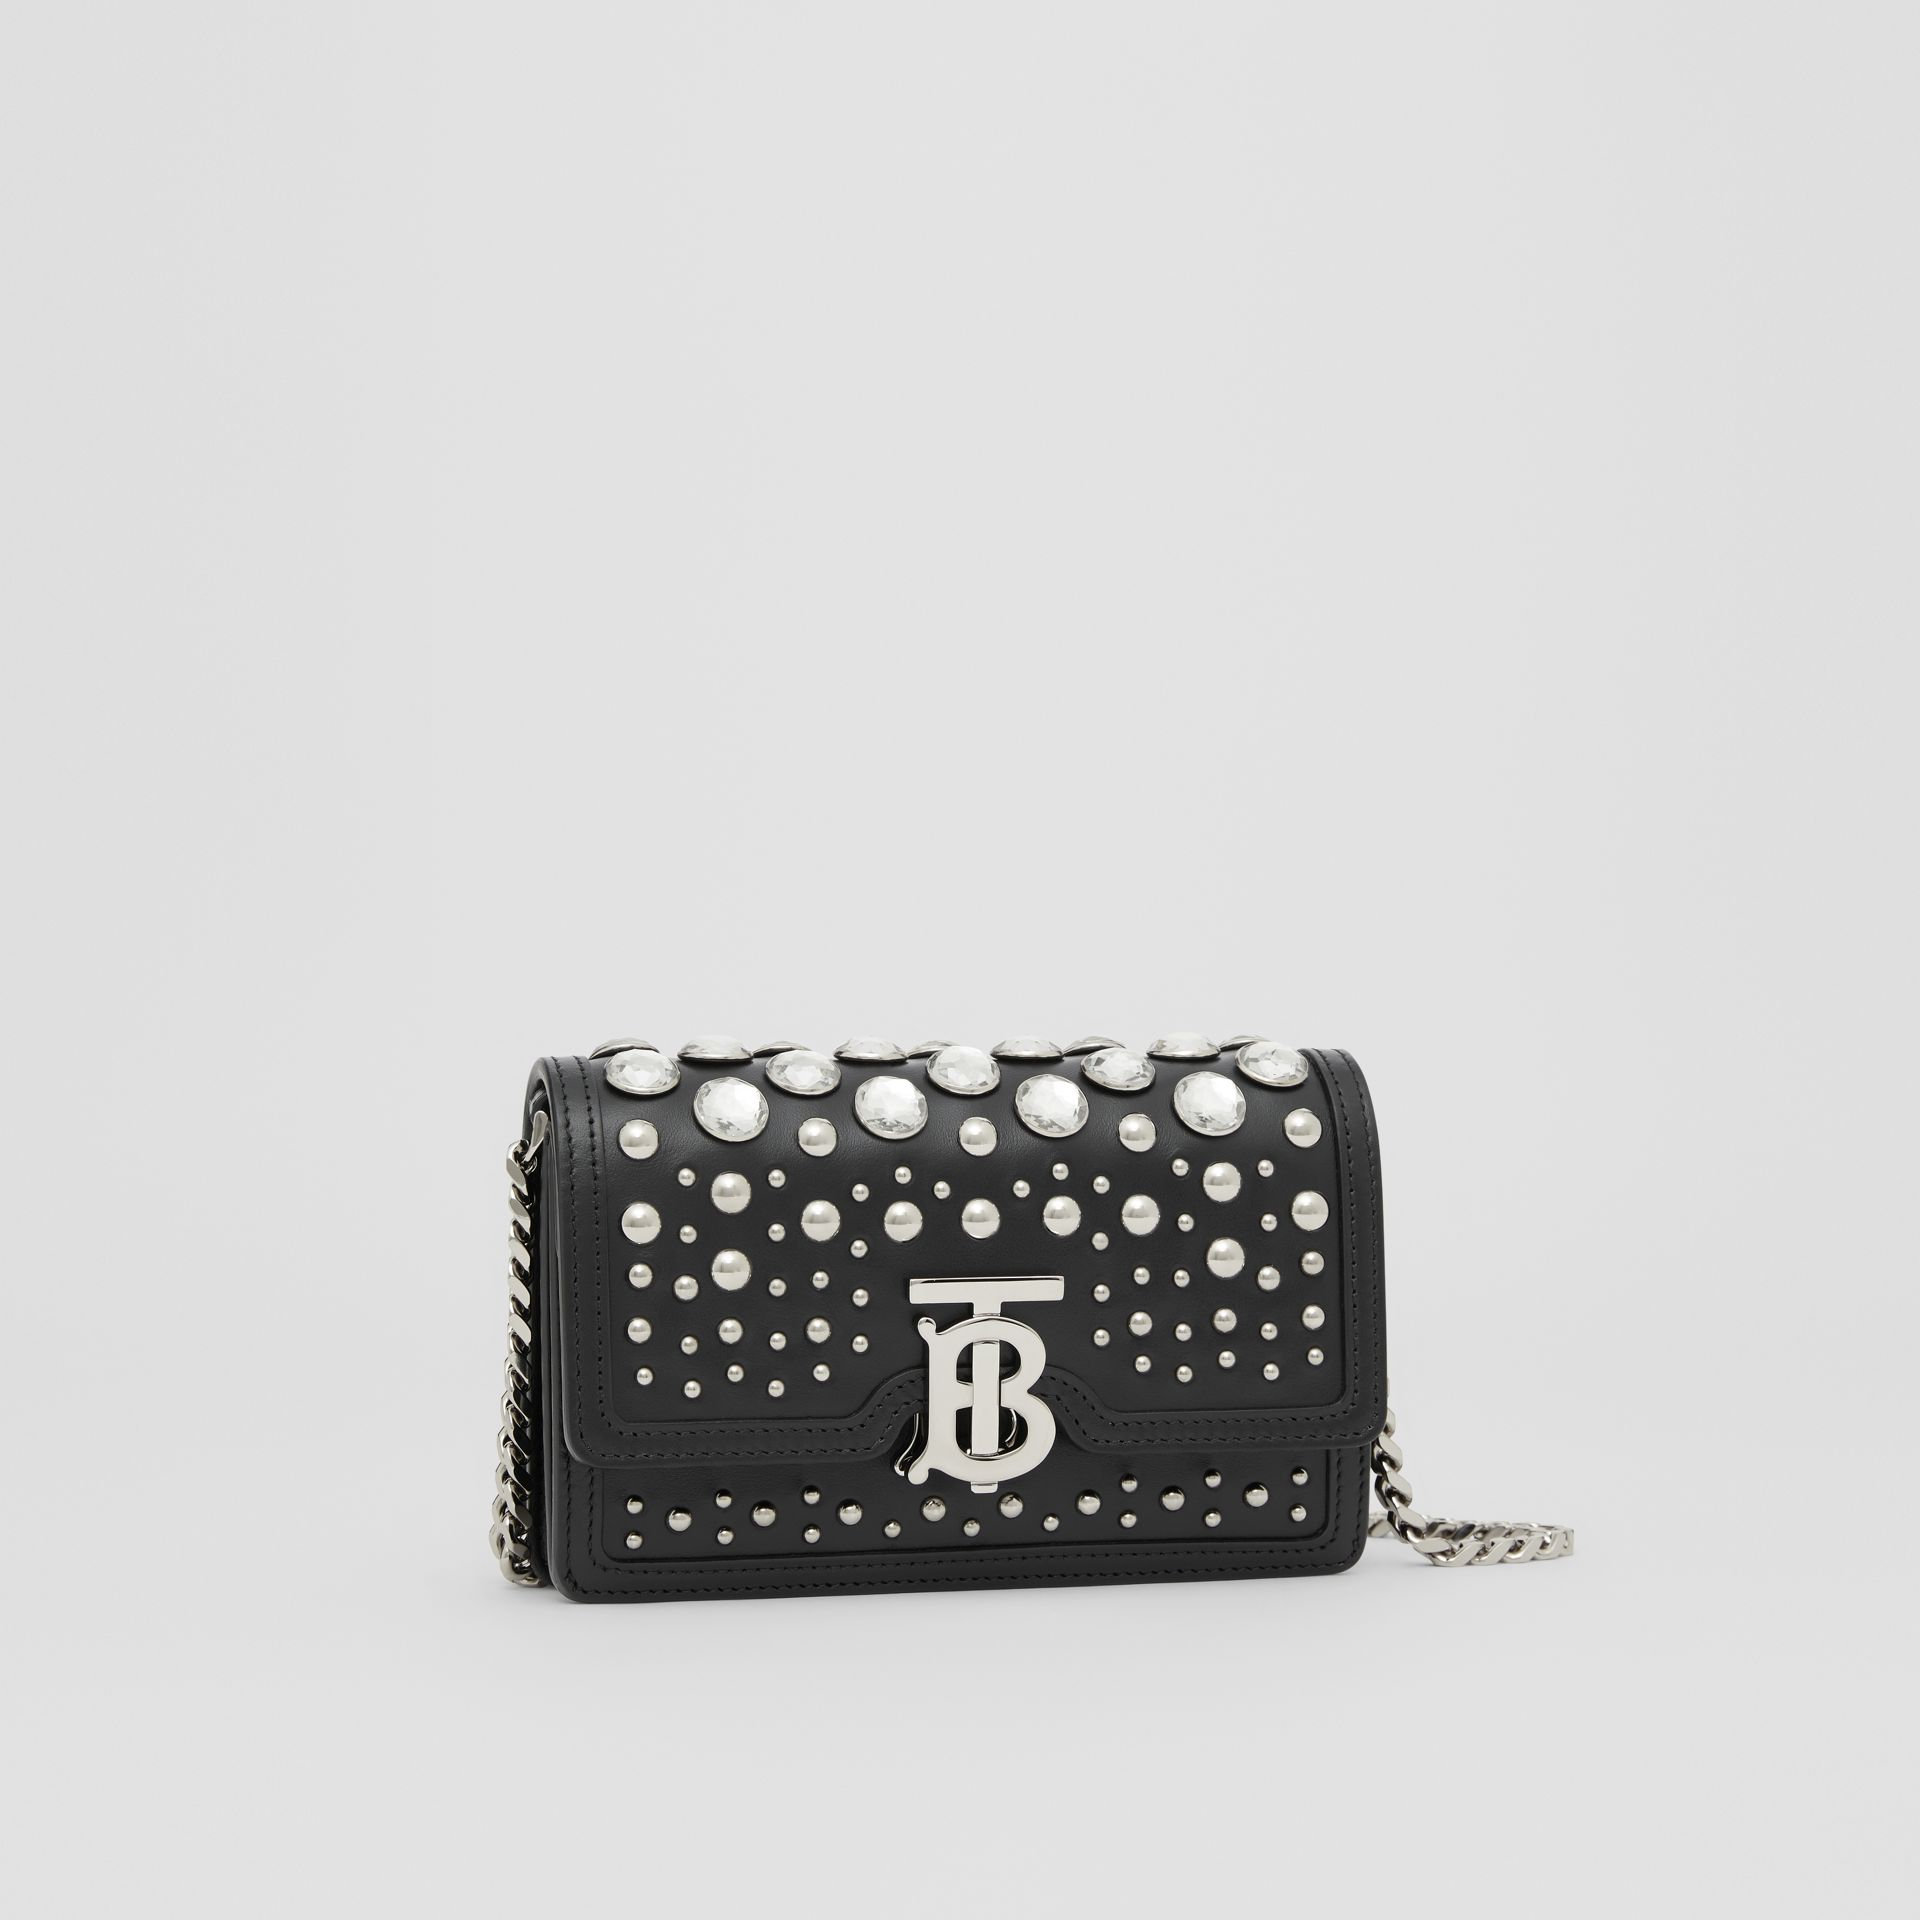 Mini Embellished Leather Shoulder Bag in Black - Women | Burberry - gallery image 6